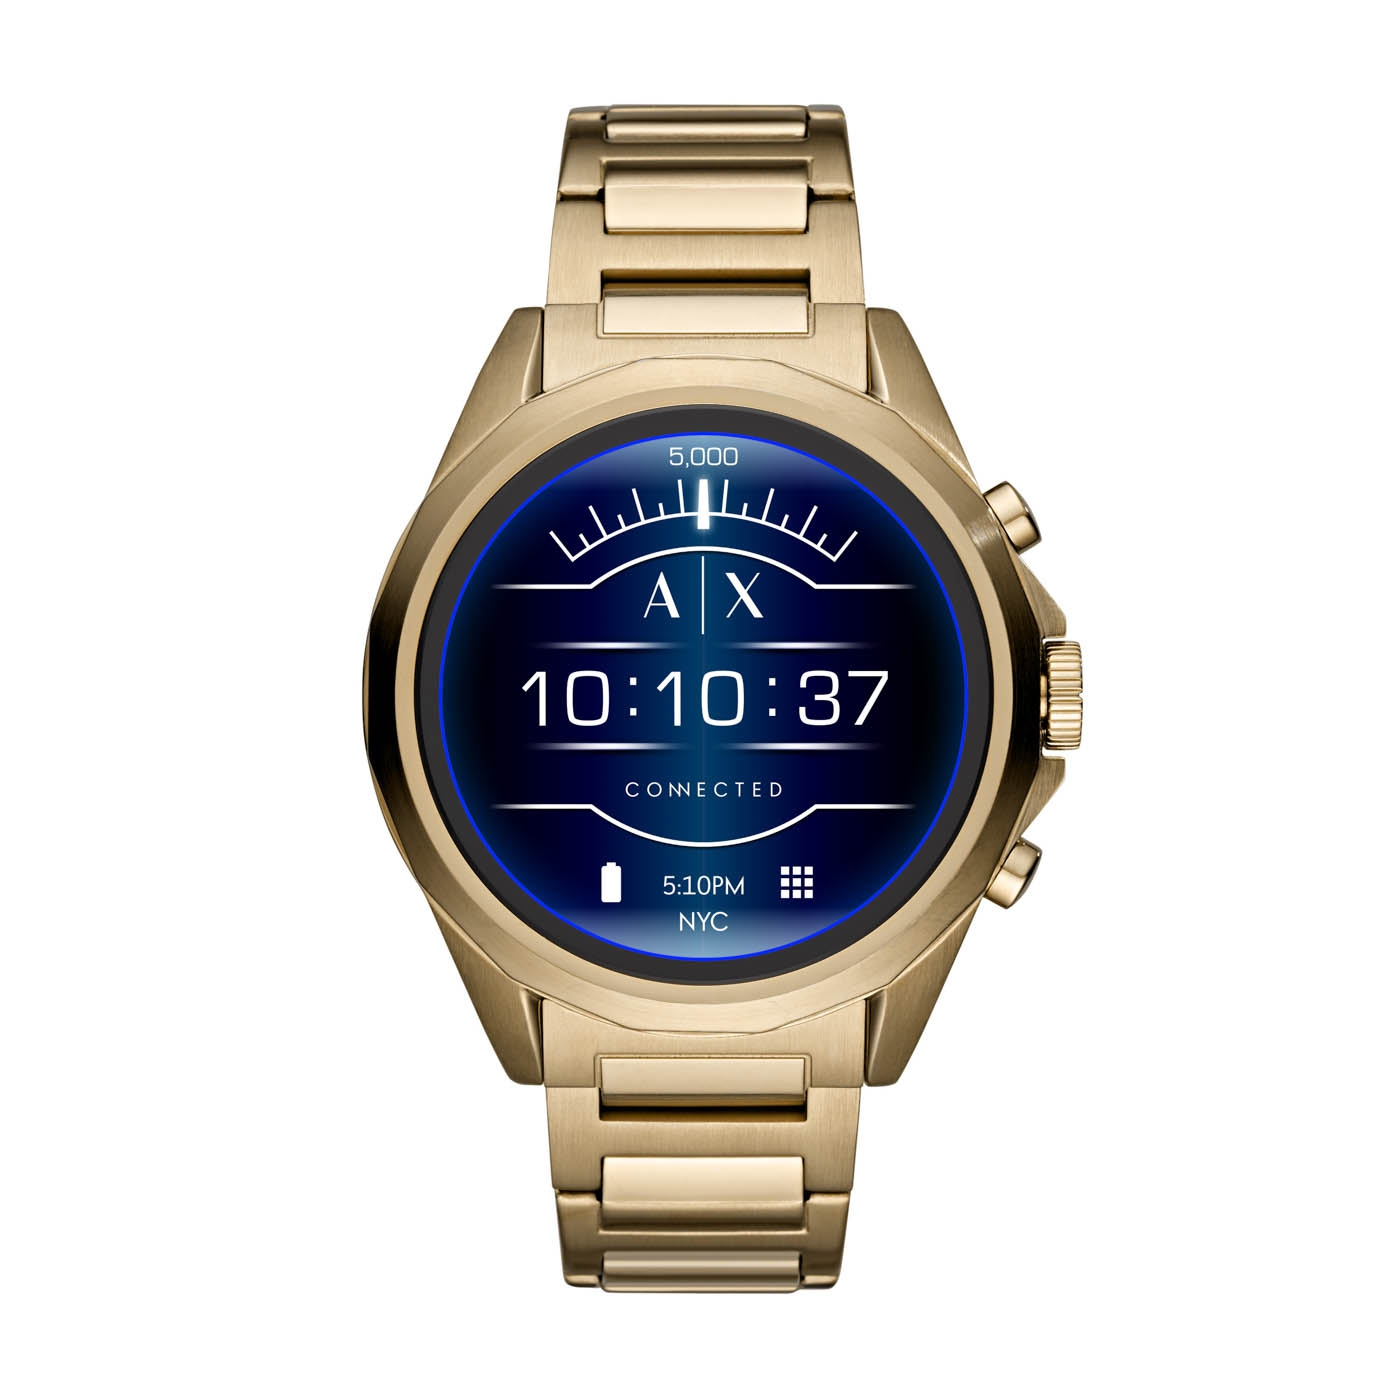 Bilde av Armani Exchange Connected Drexler Gen 4 Display Smartwatch AXT2001